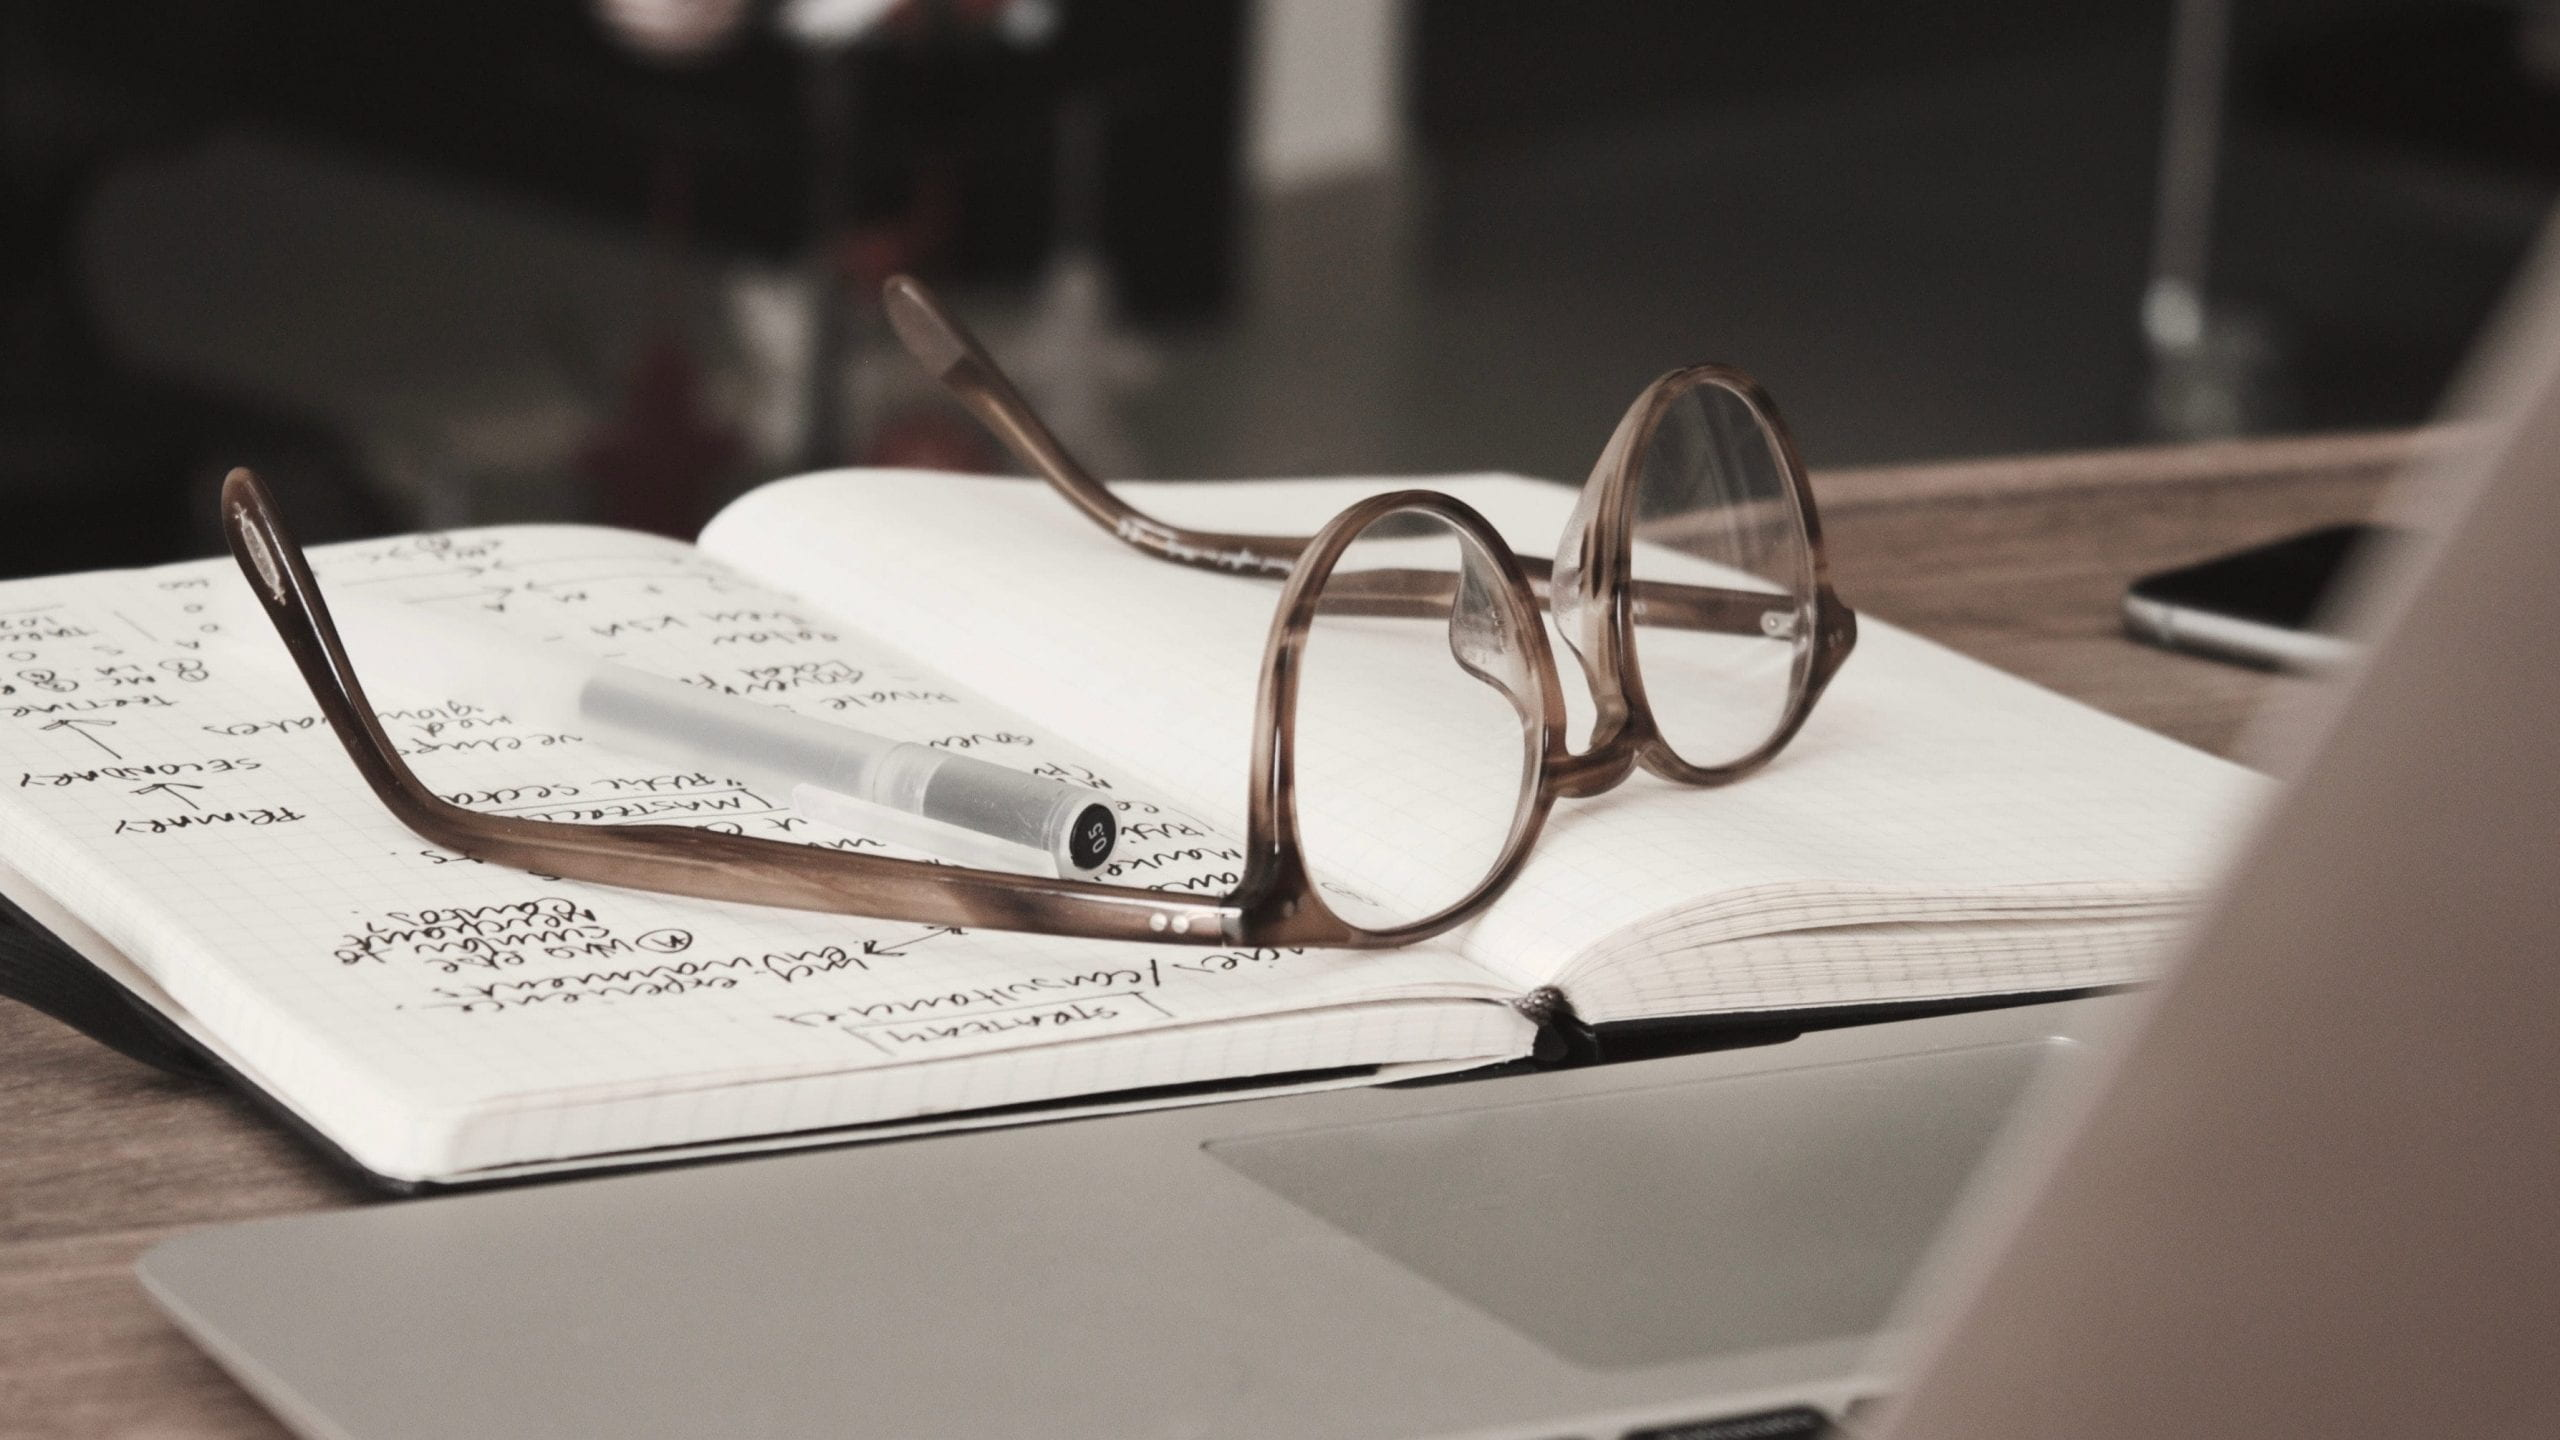 A pair of glasses on an notebook in front of a laptop